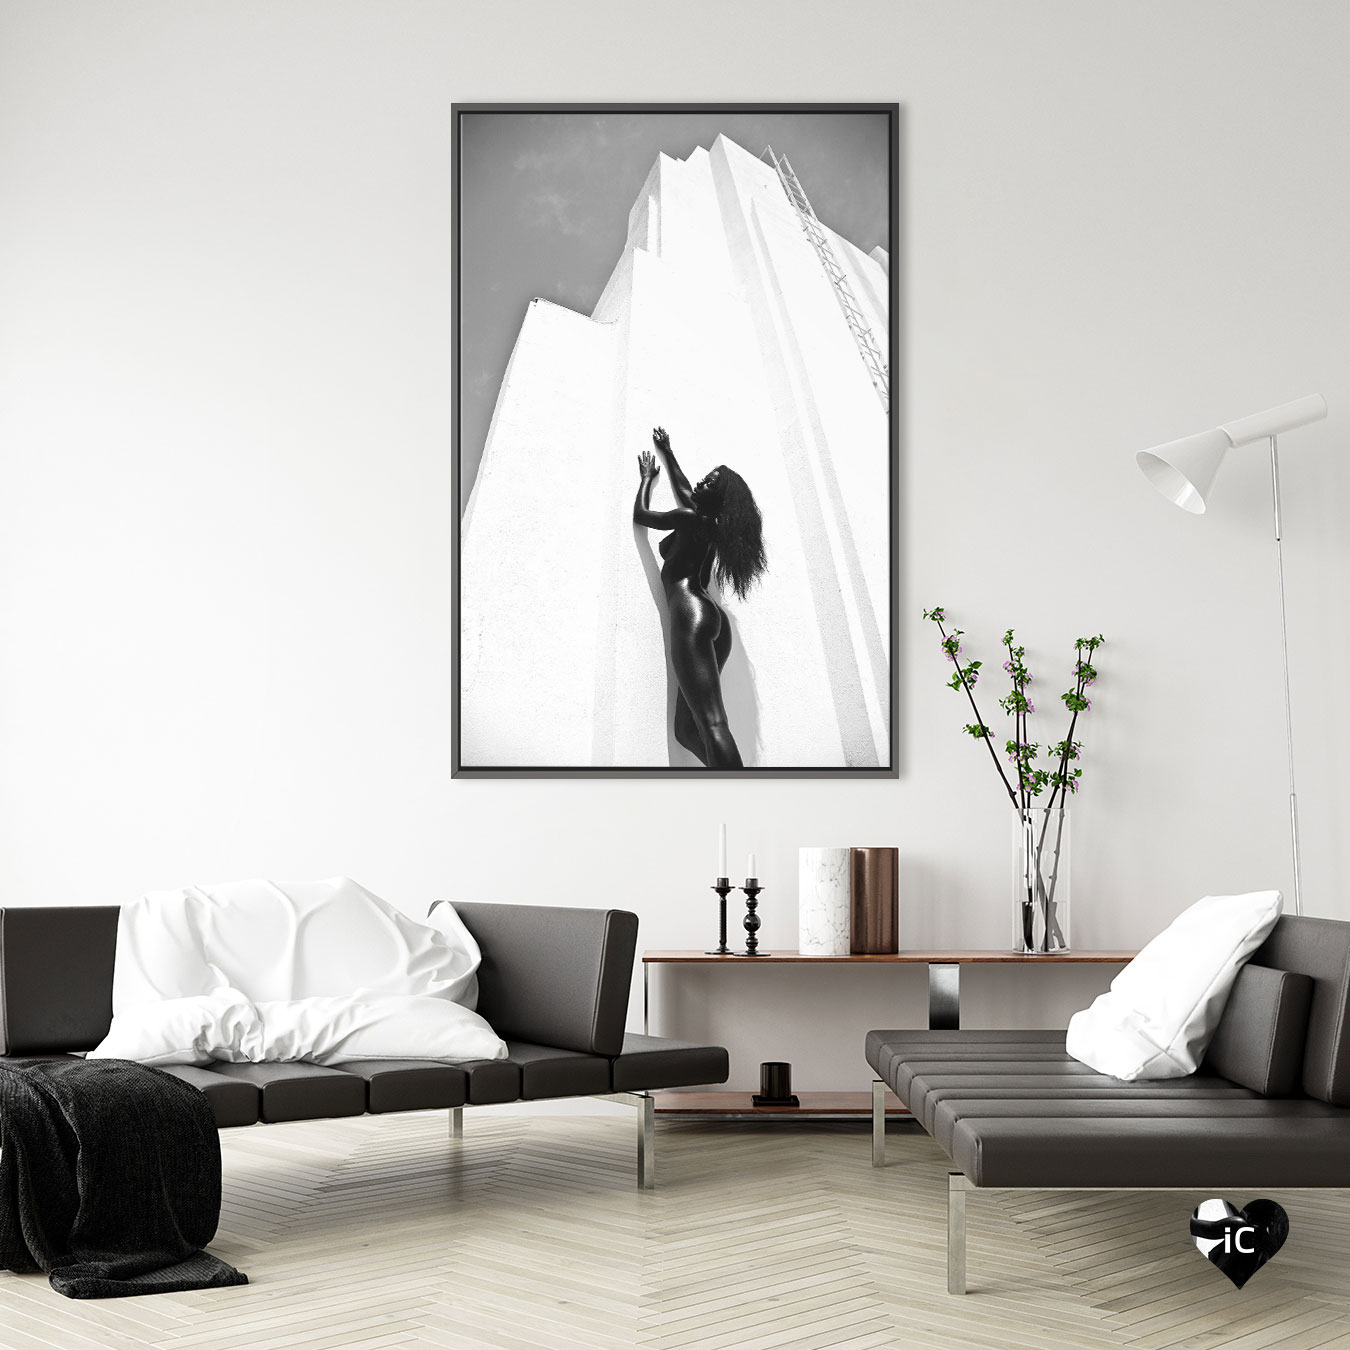 """""""Climbing"""" by Gregory Prescott shows a black and white photo of a black woman with long hair leaning against a tall white skyscraper"""